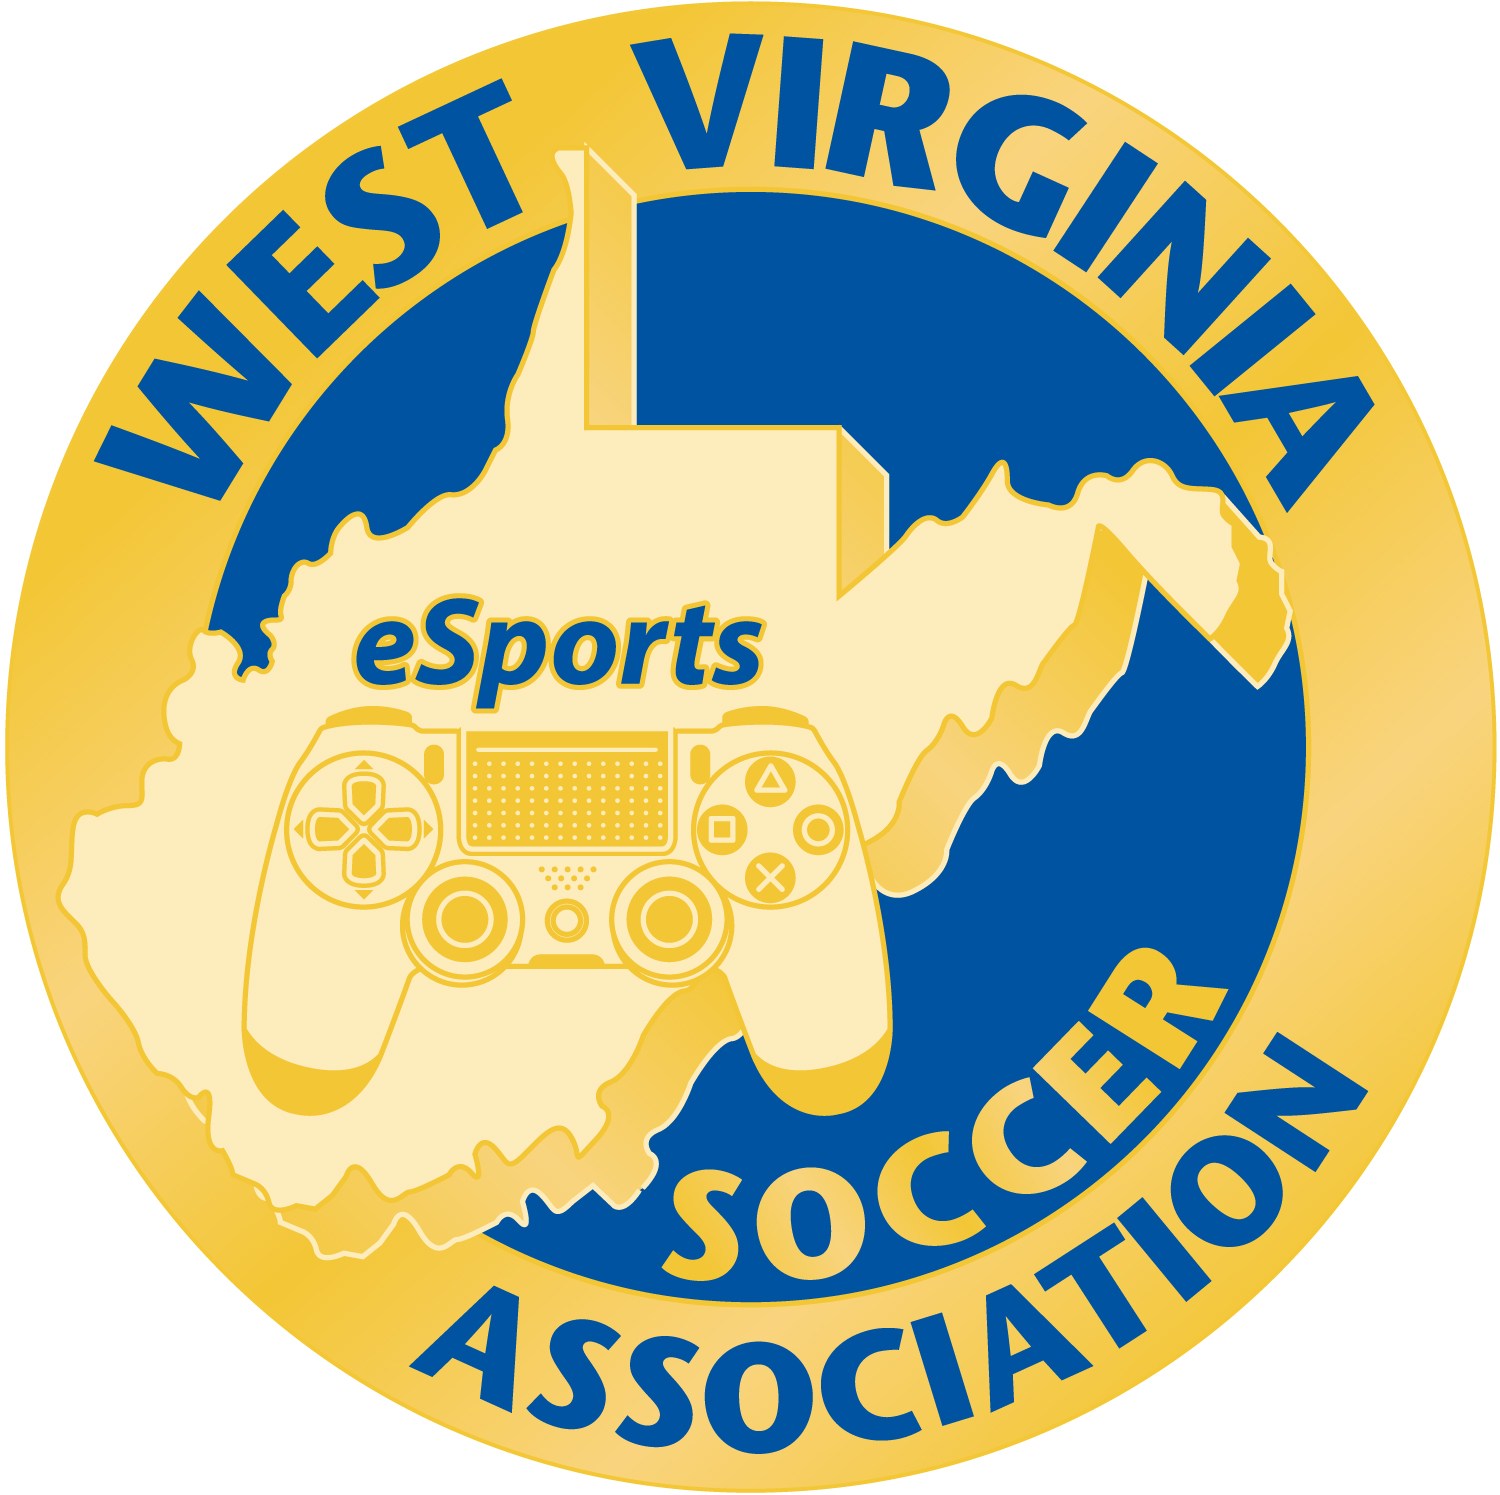 West Virginia Soccer Association